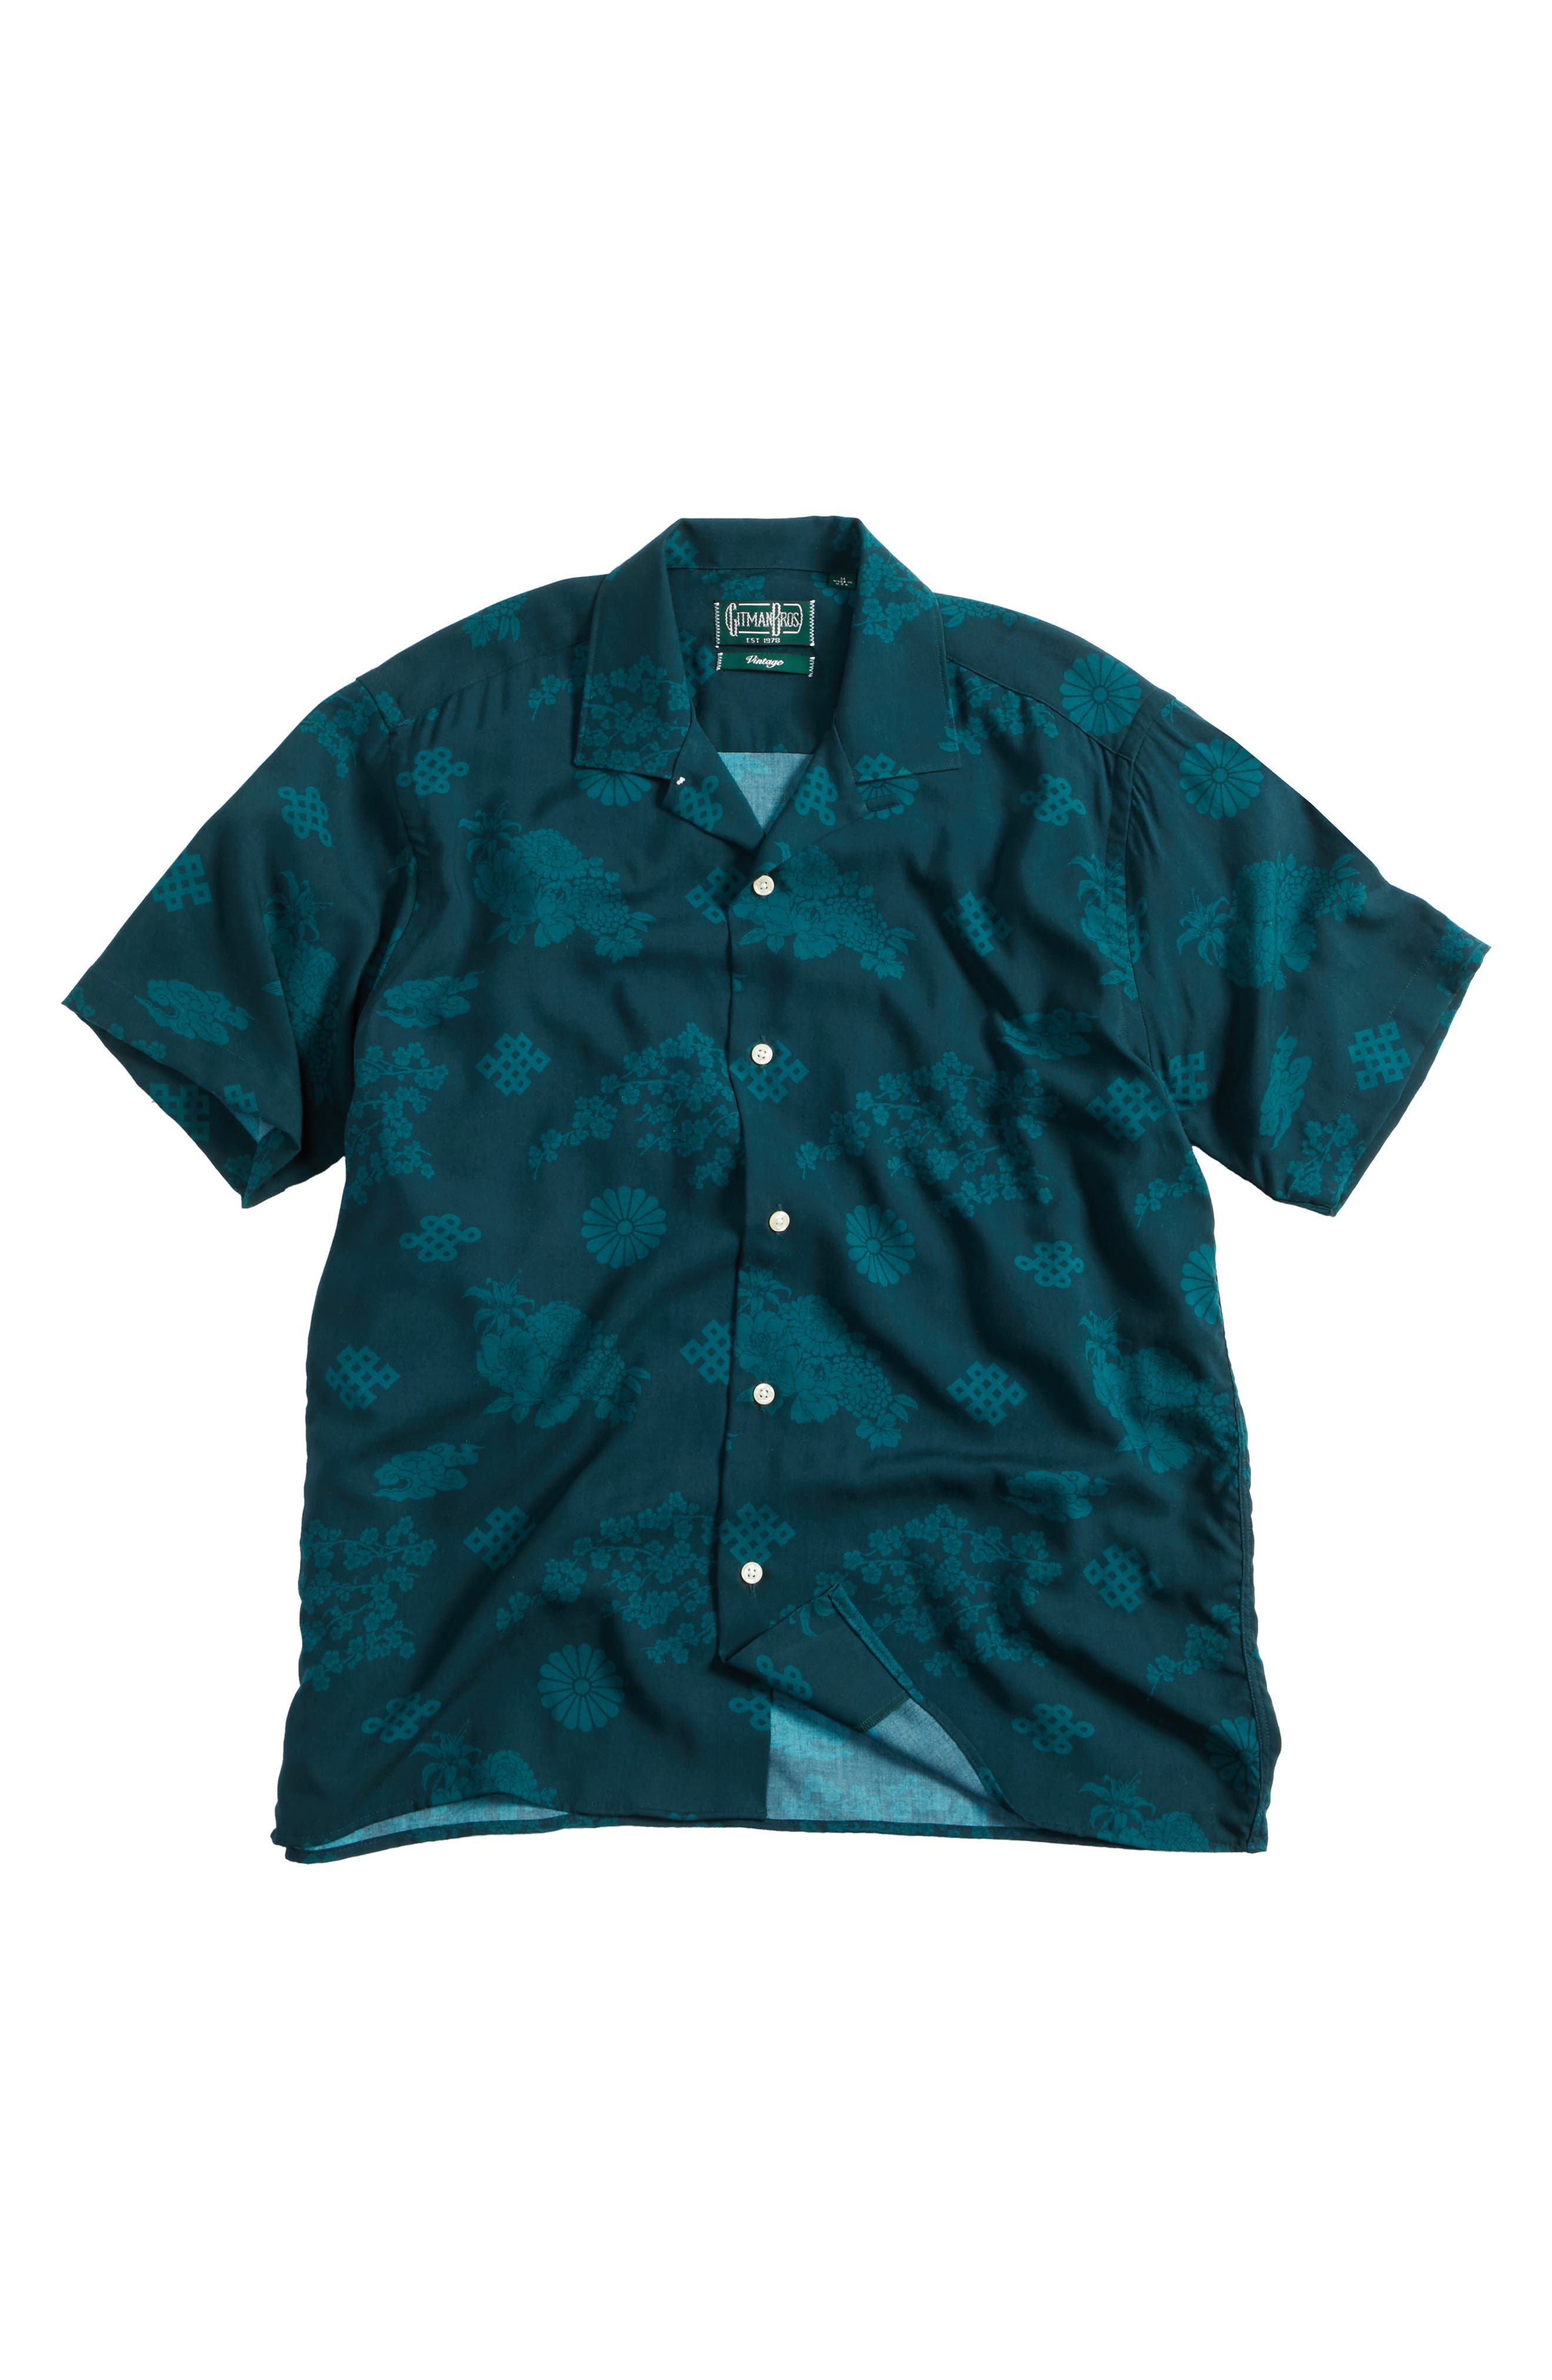 Main Image - Gitman x The North Face Men's Floral Print Camp Shirt (Limited Edition)